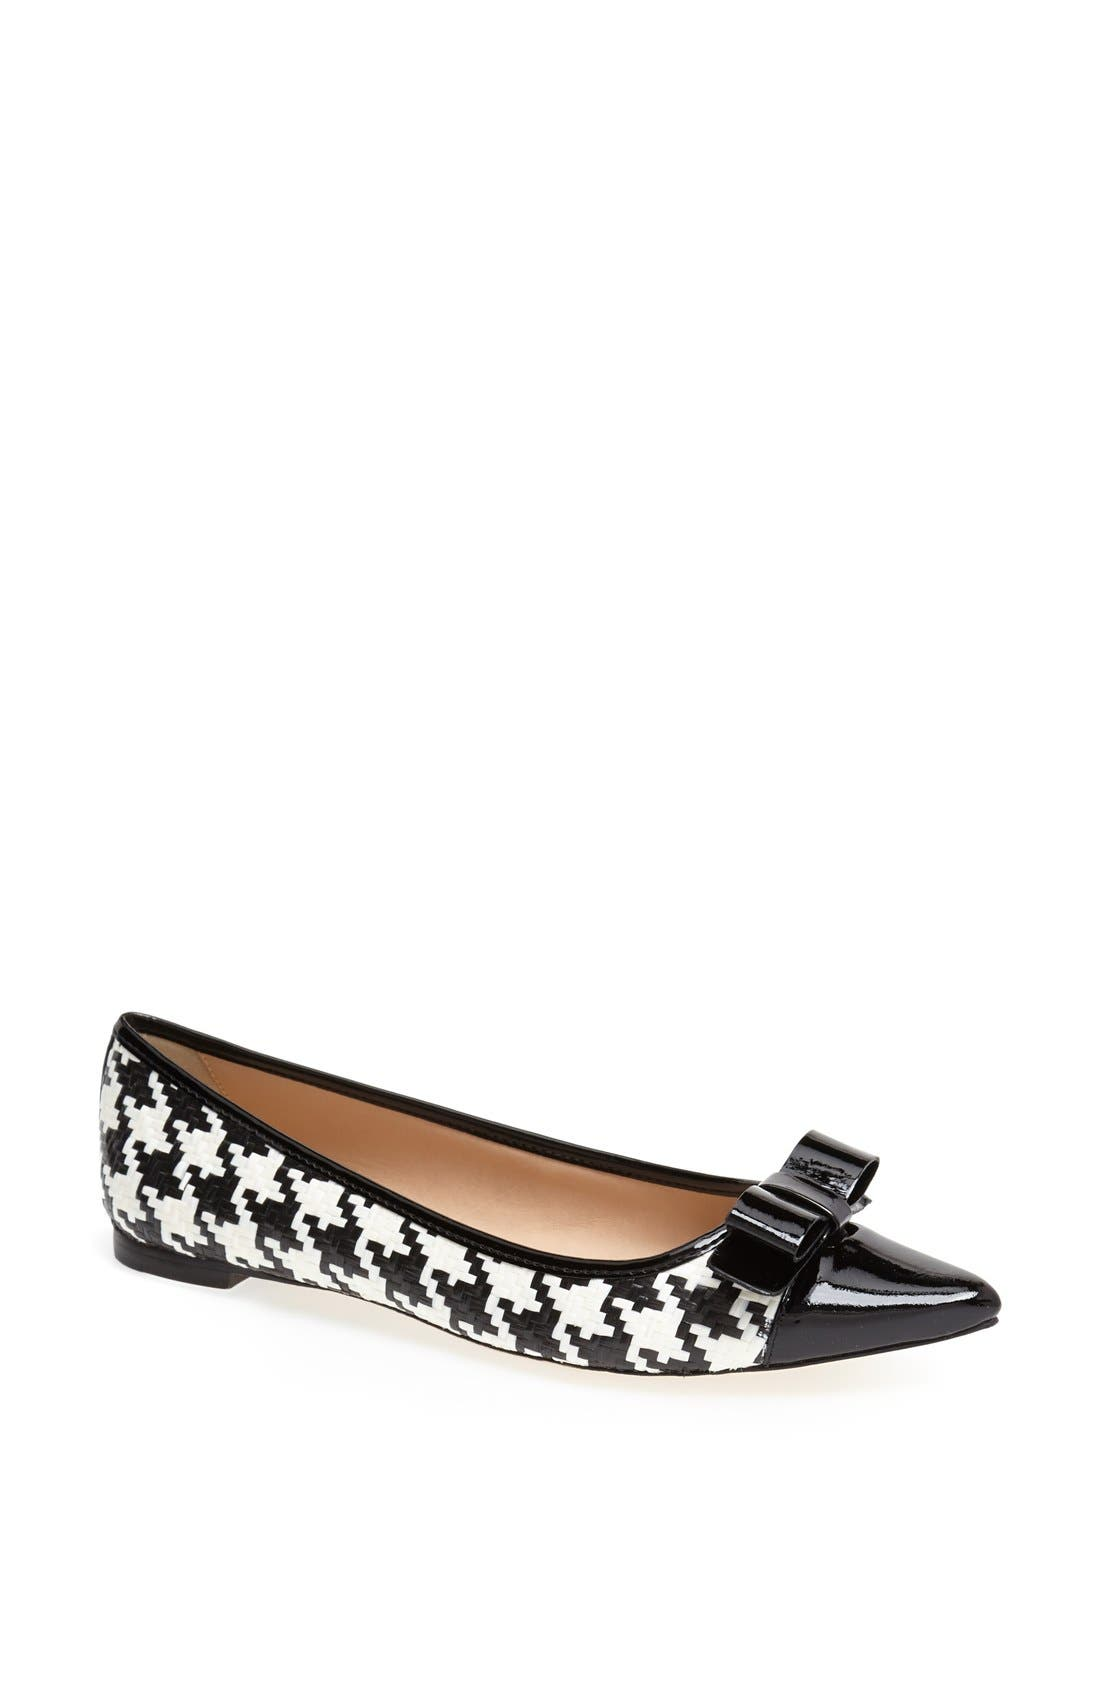 Main Image - kate spade new york 'gabe too' pointy toe flat